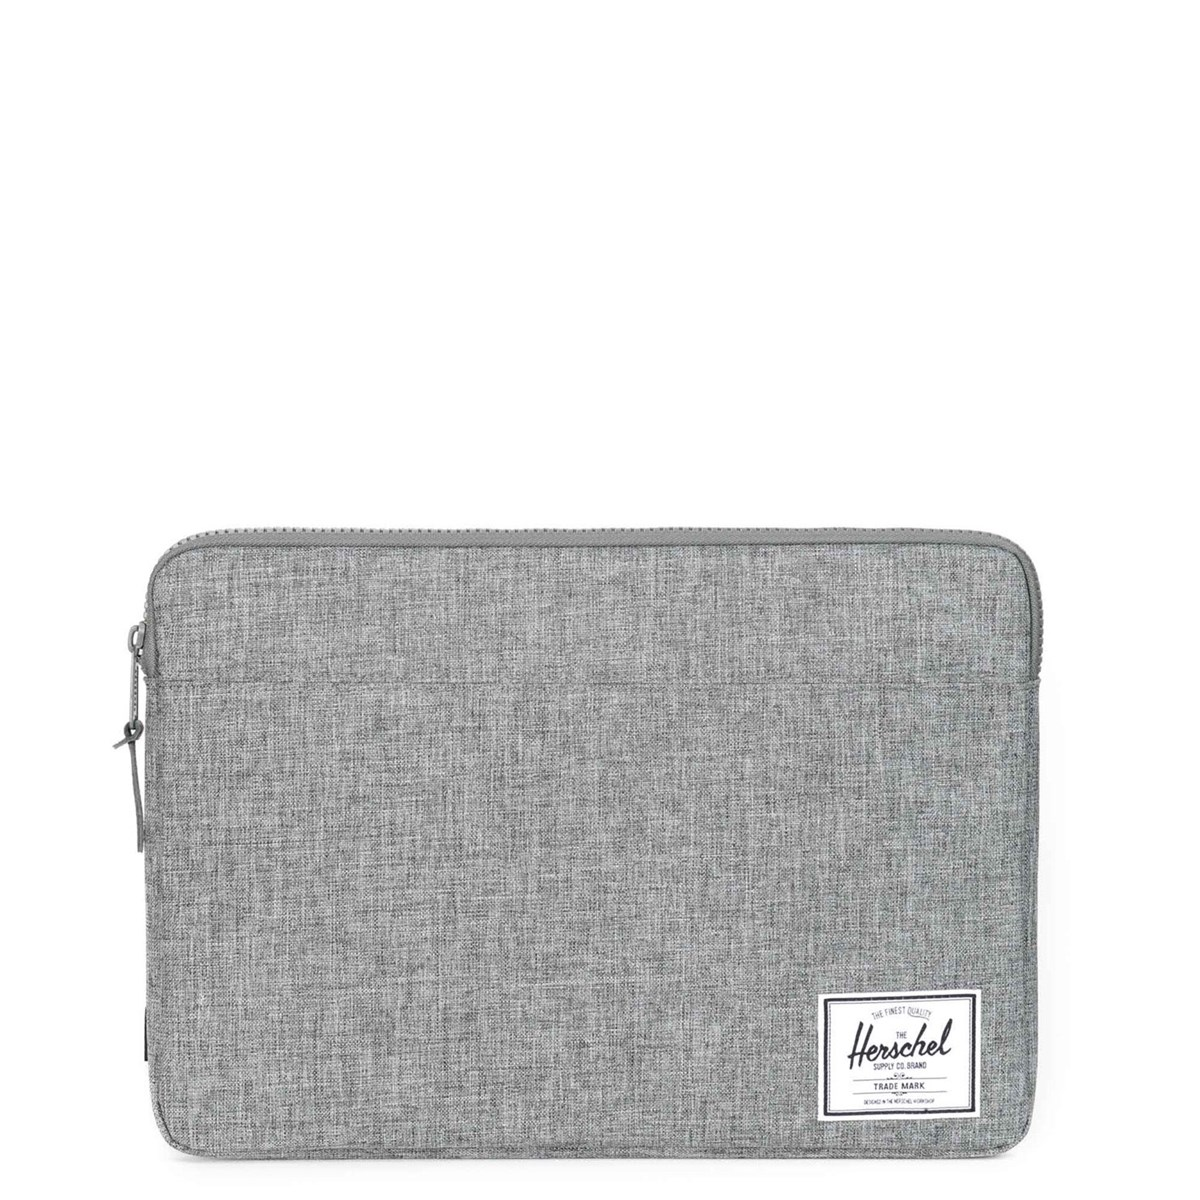 Cover Image For Herschel Supply Co. Anchor Sleeve Macbook/Macbook Air.